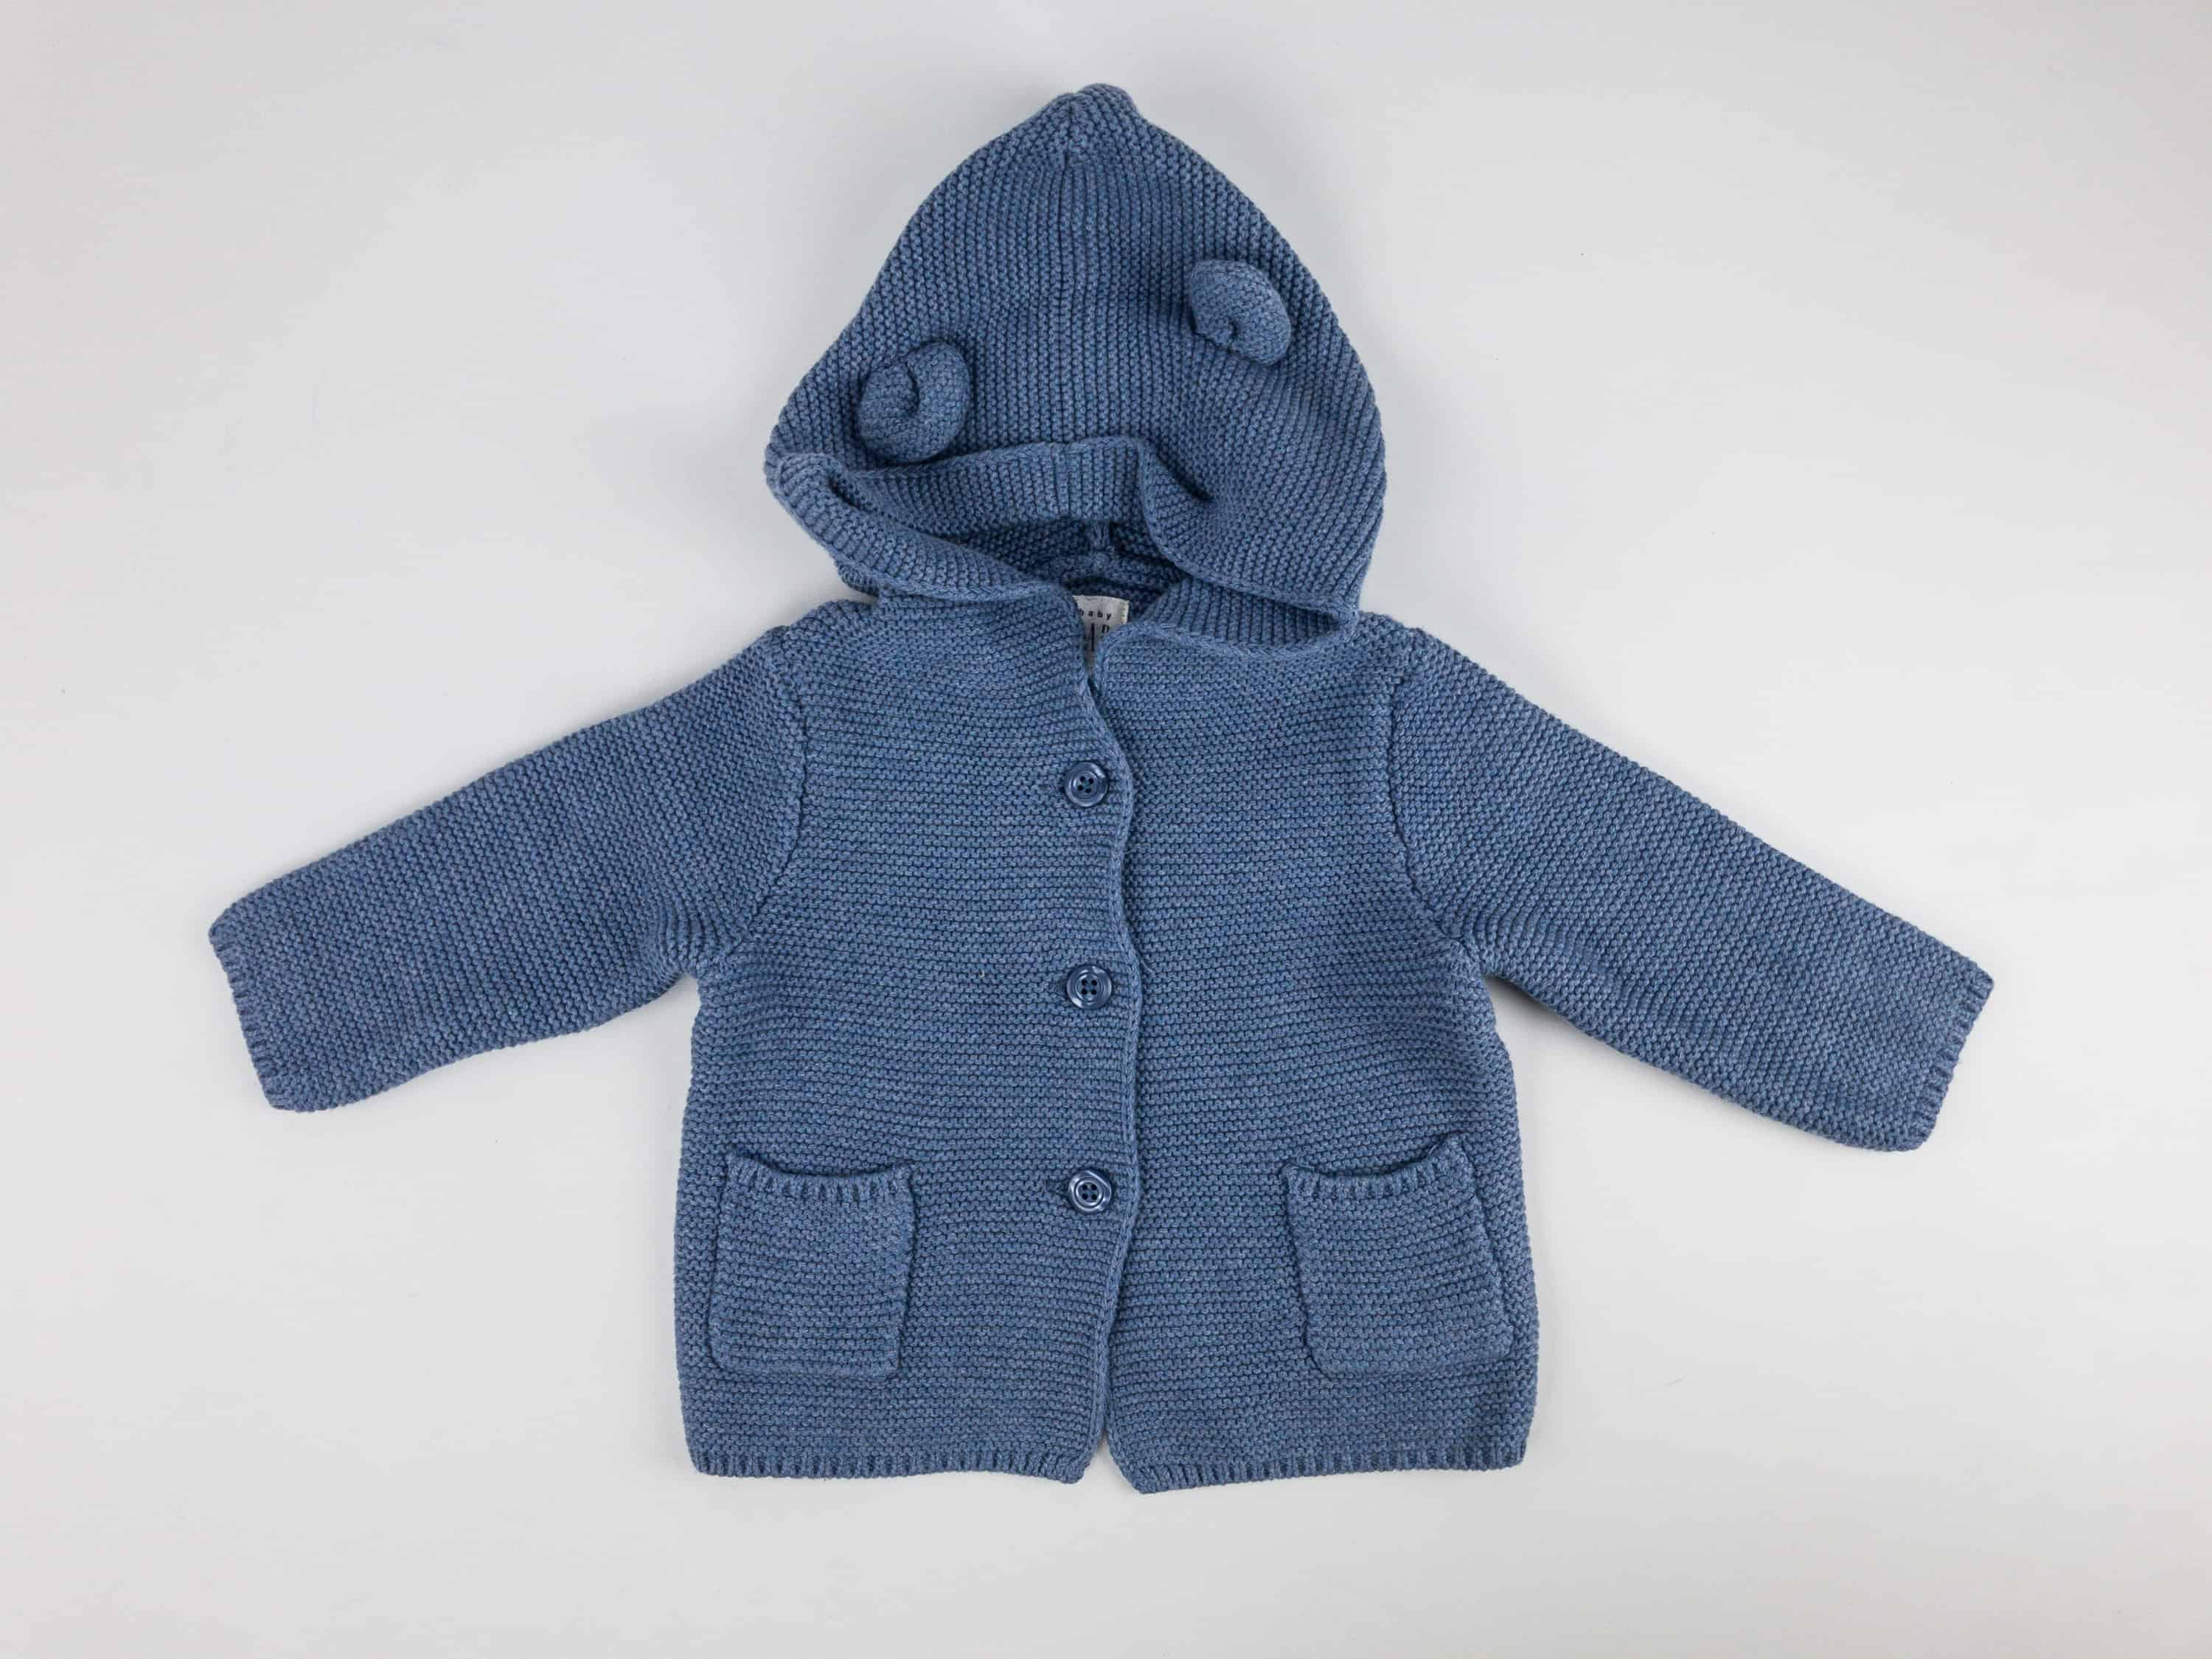 Baby Gap Gift Box : Babygap outfitbox winter subscription box review